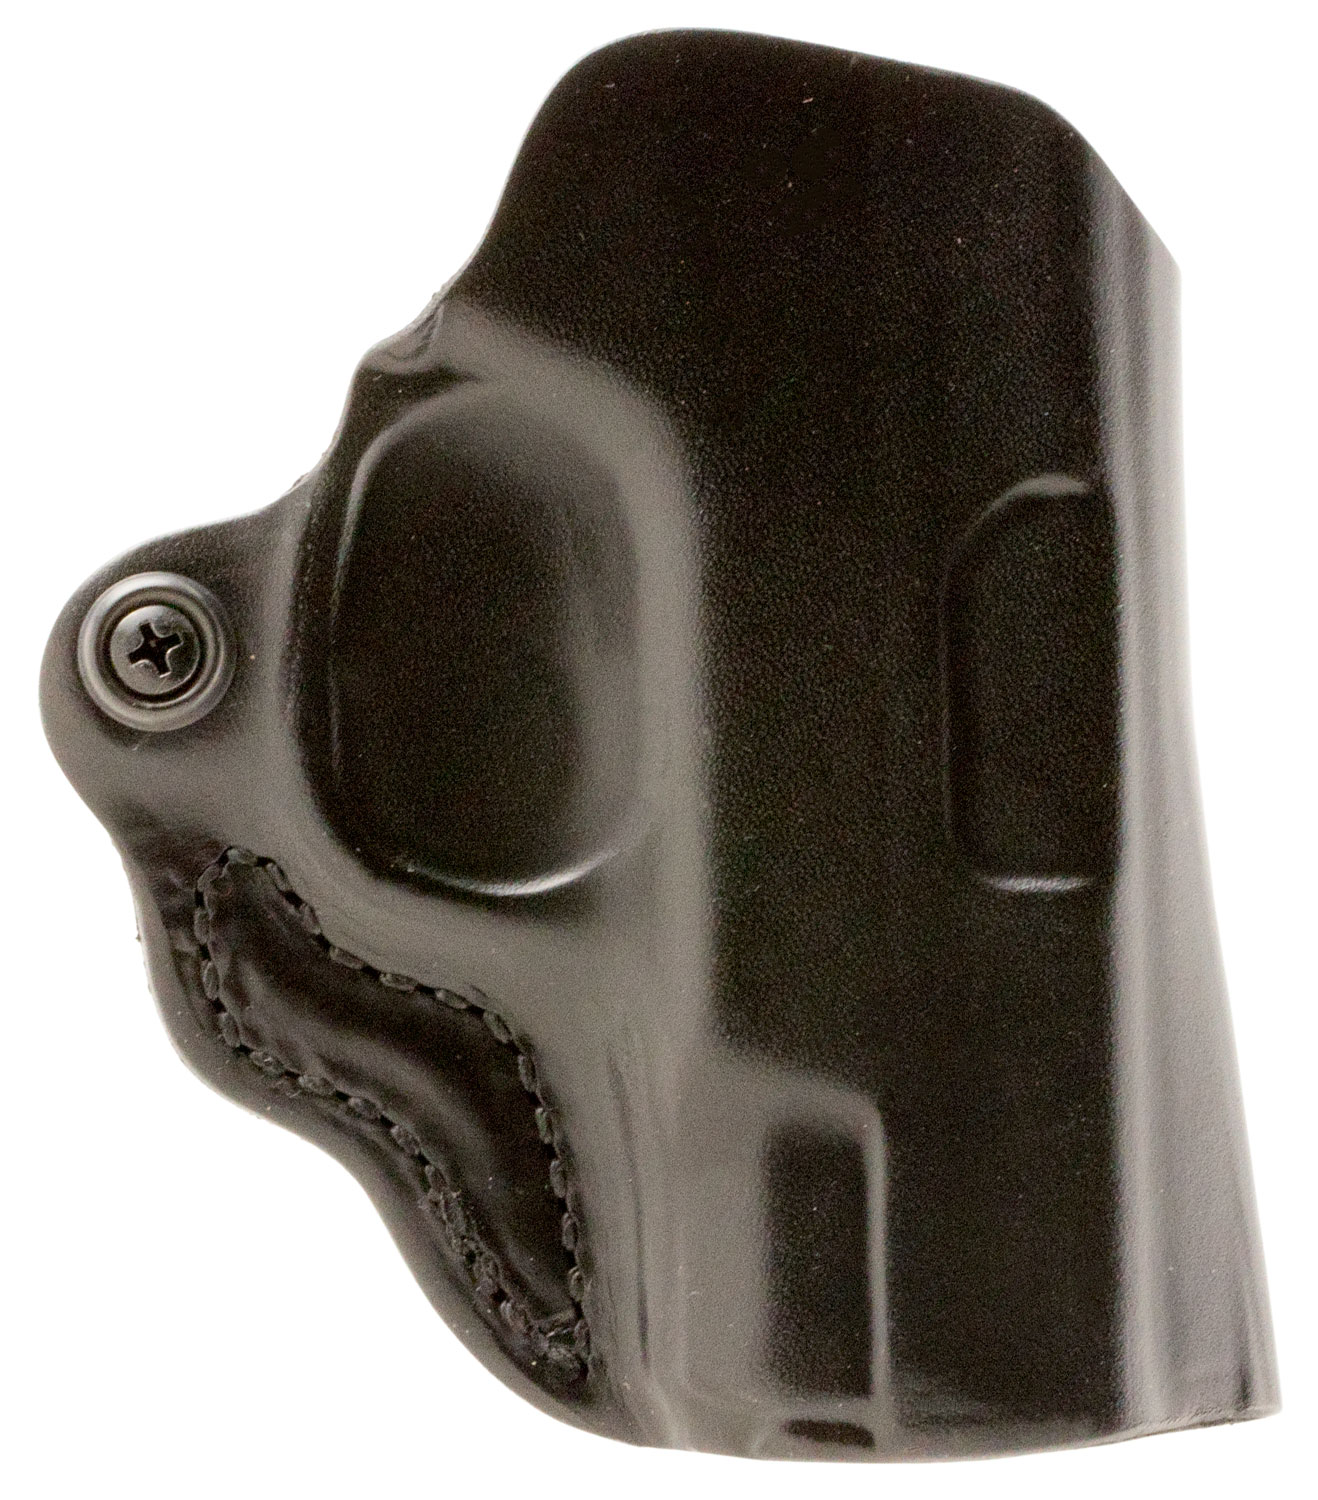 Desantis Gunhide 019BA8JZ0 Mini Scabbard Black  Sig P365 Leather Black